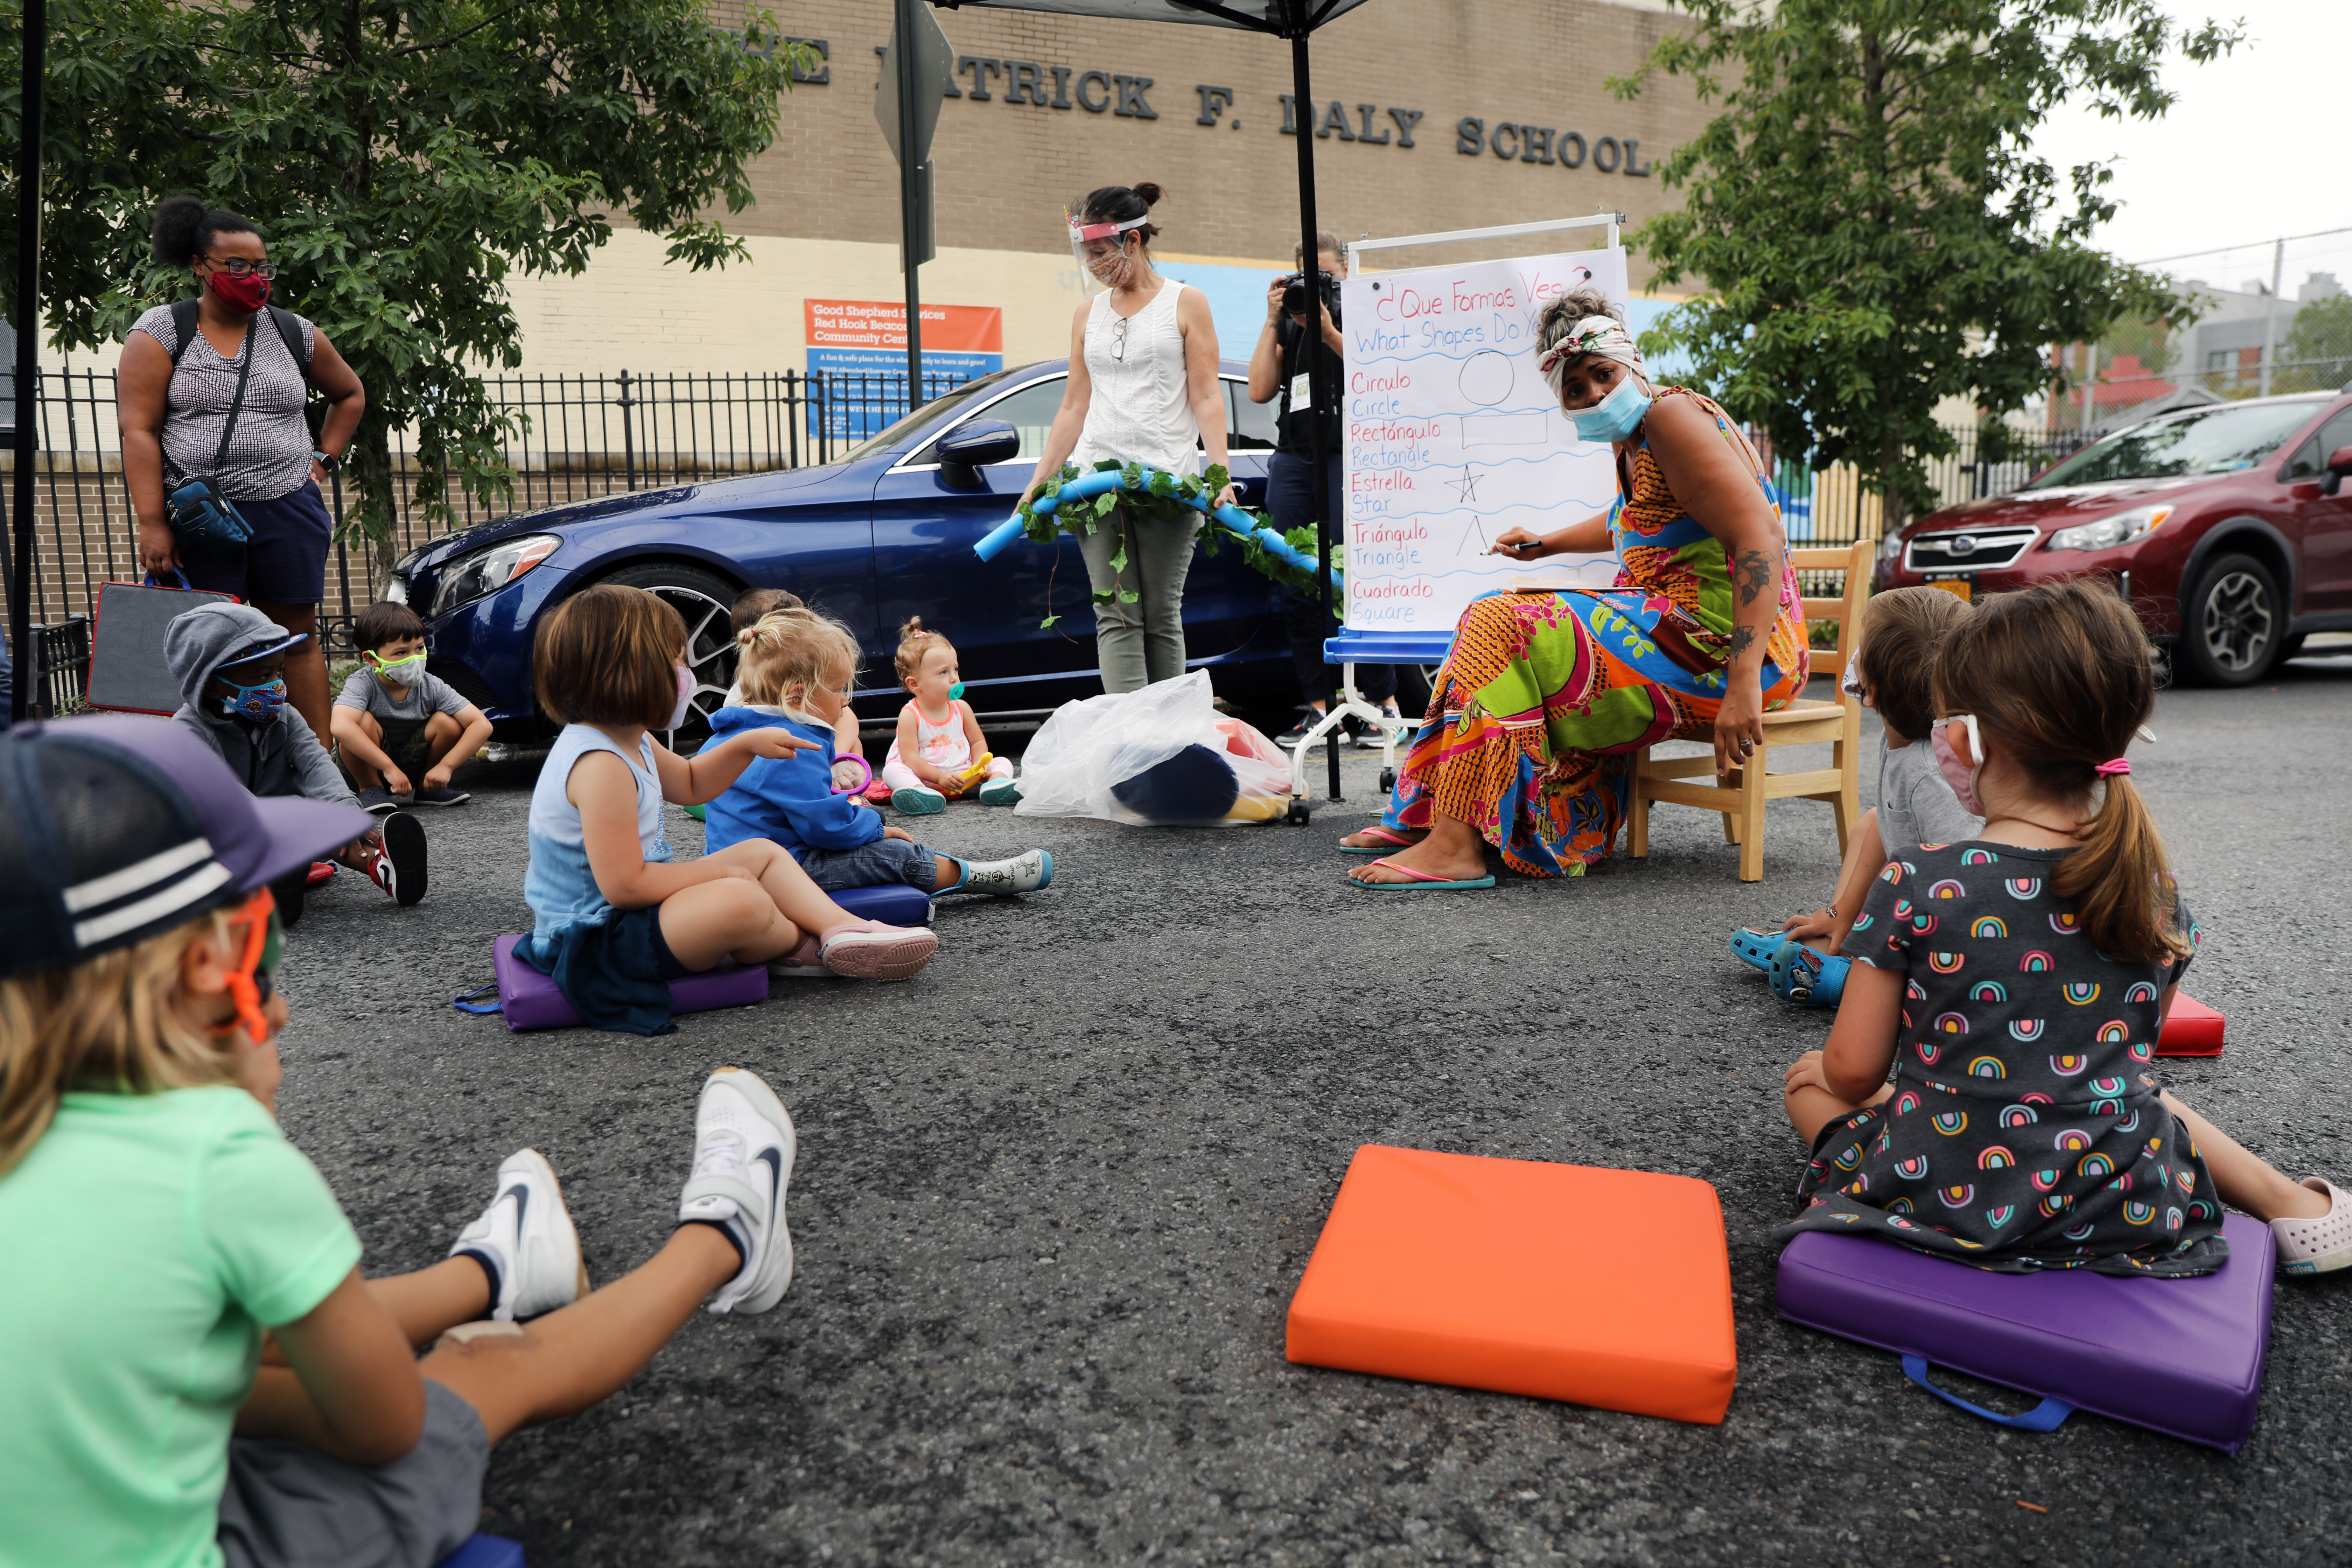 City council members, parents and students participate in an outdoor learning demonstration in front of a public school in the Red Hook neighborhood on September 02, 2020 in the Brooklyn borough of New York City.